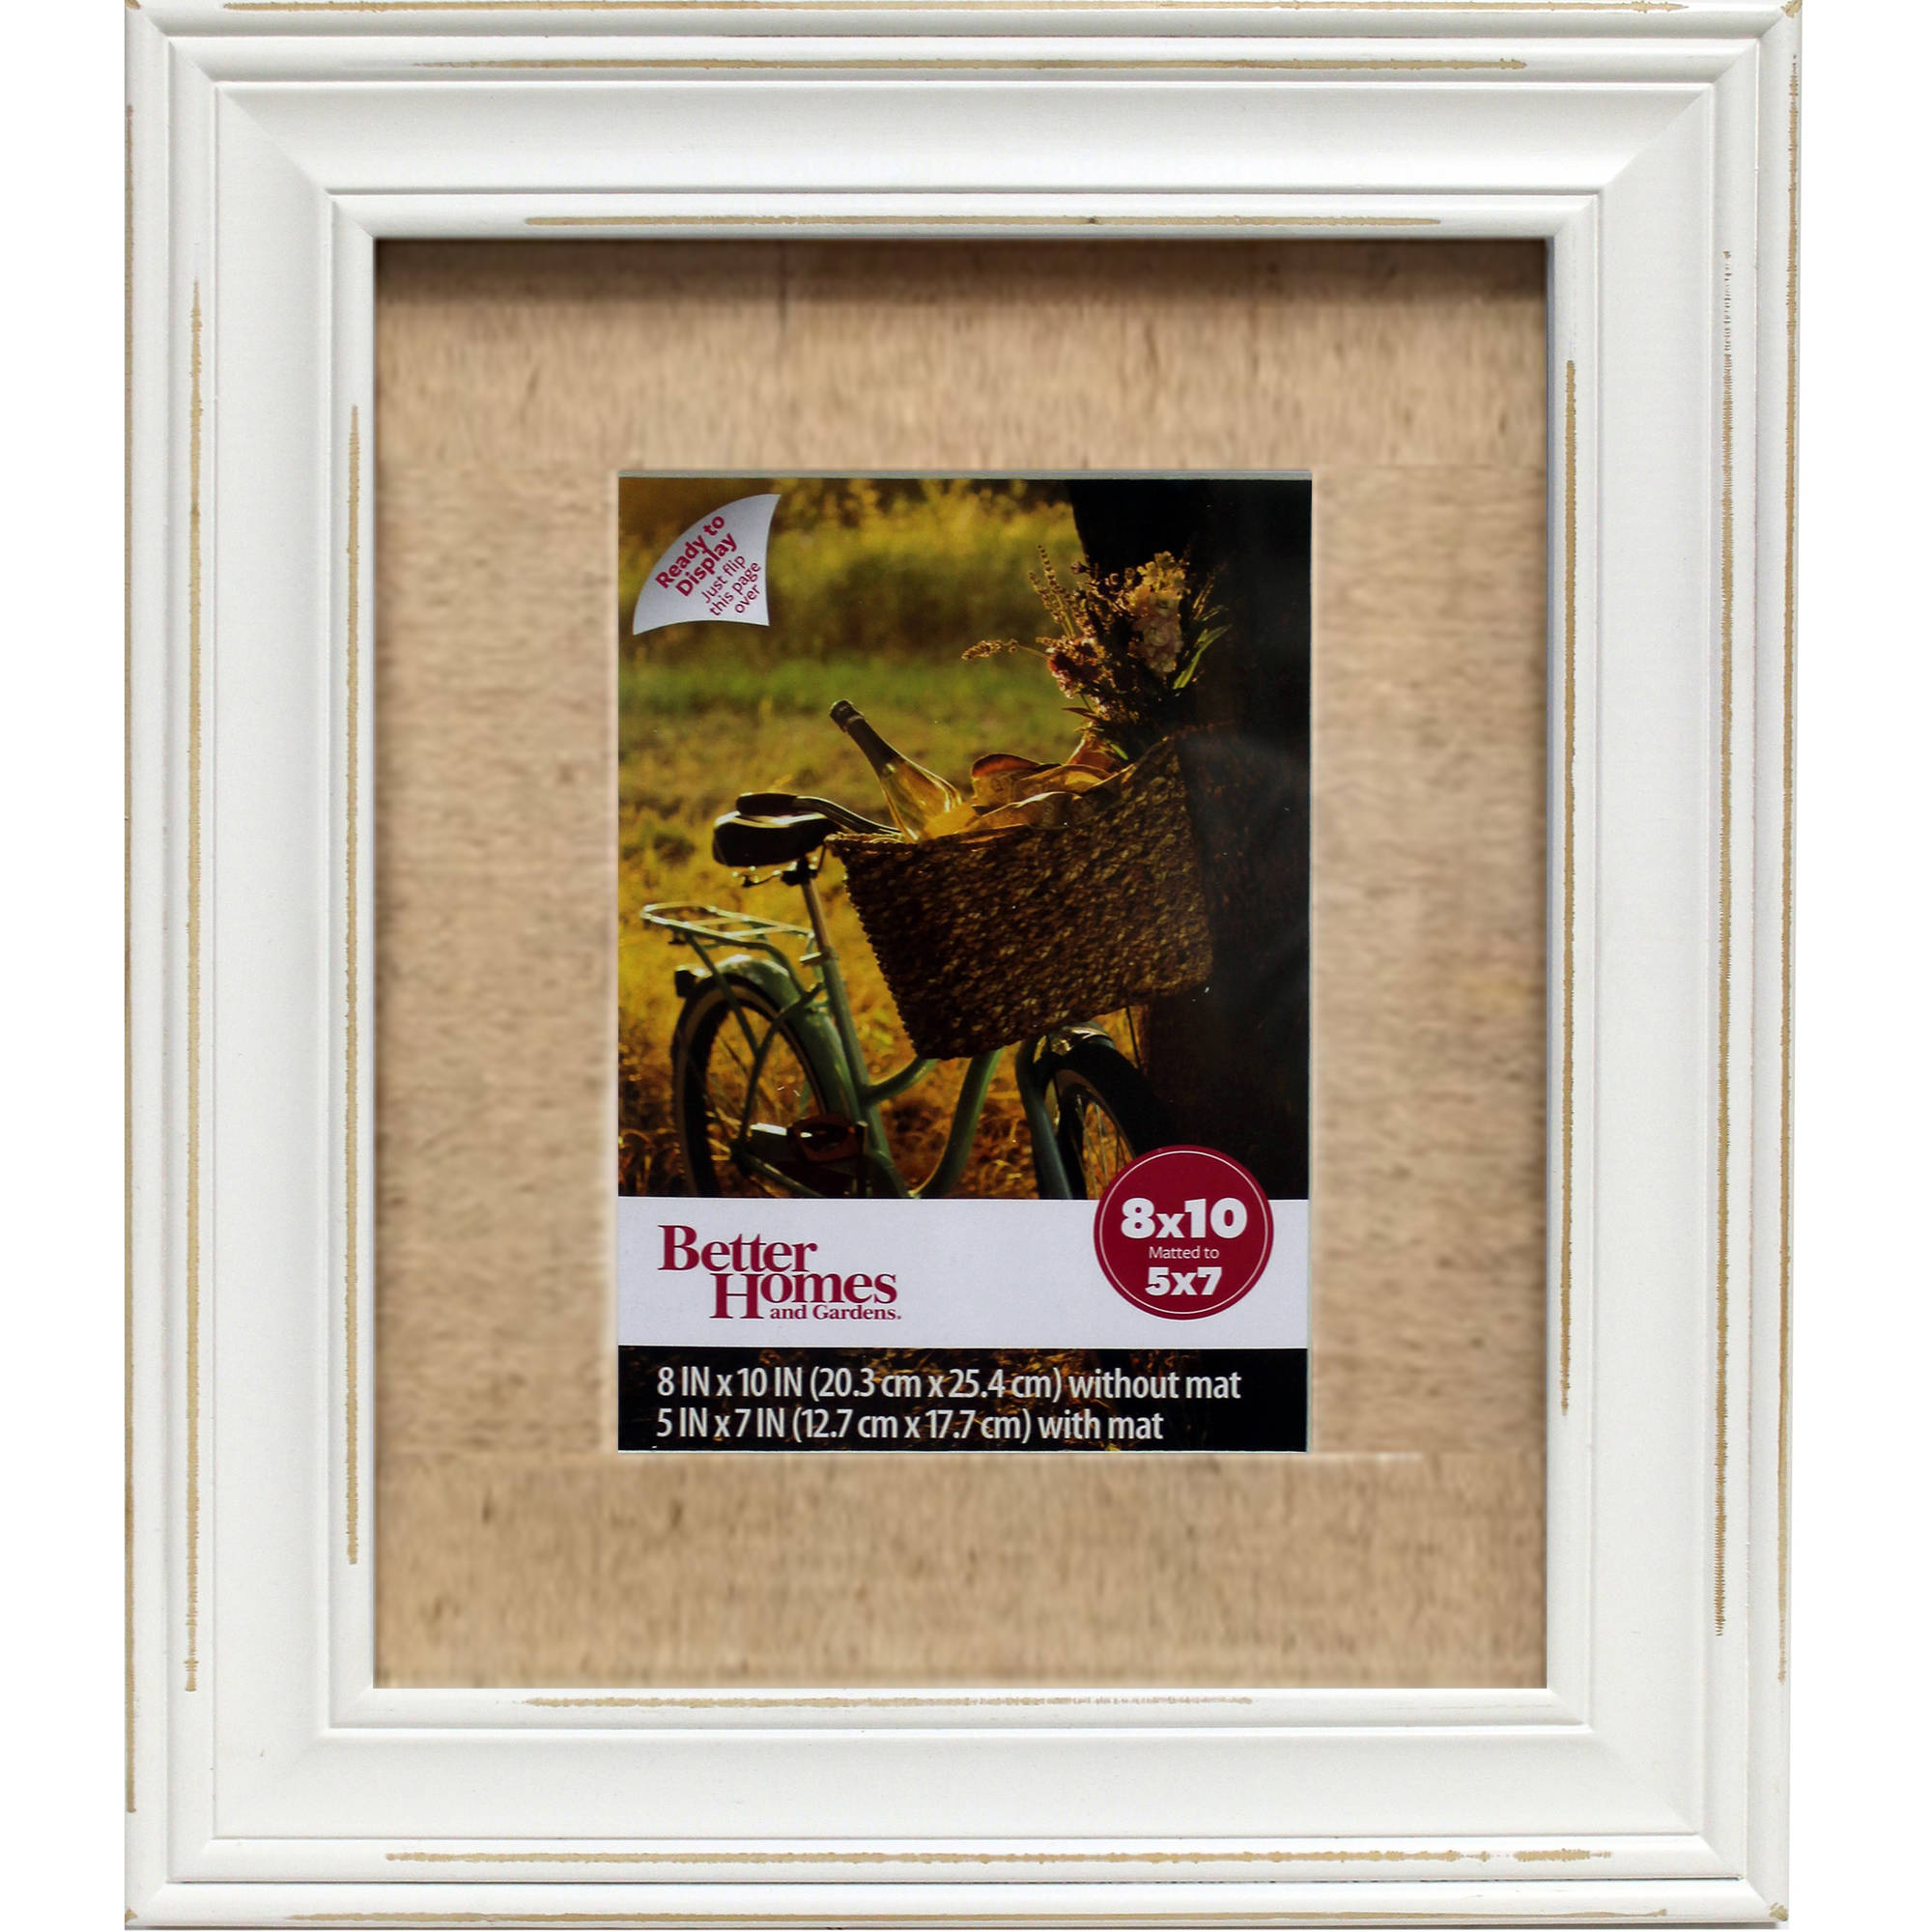 Better Homes and Gardens 8x10 Frame, Distressed White